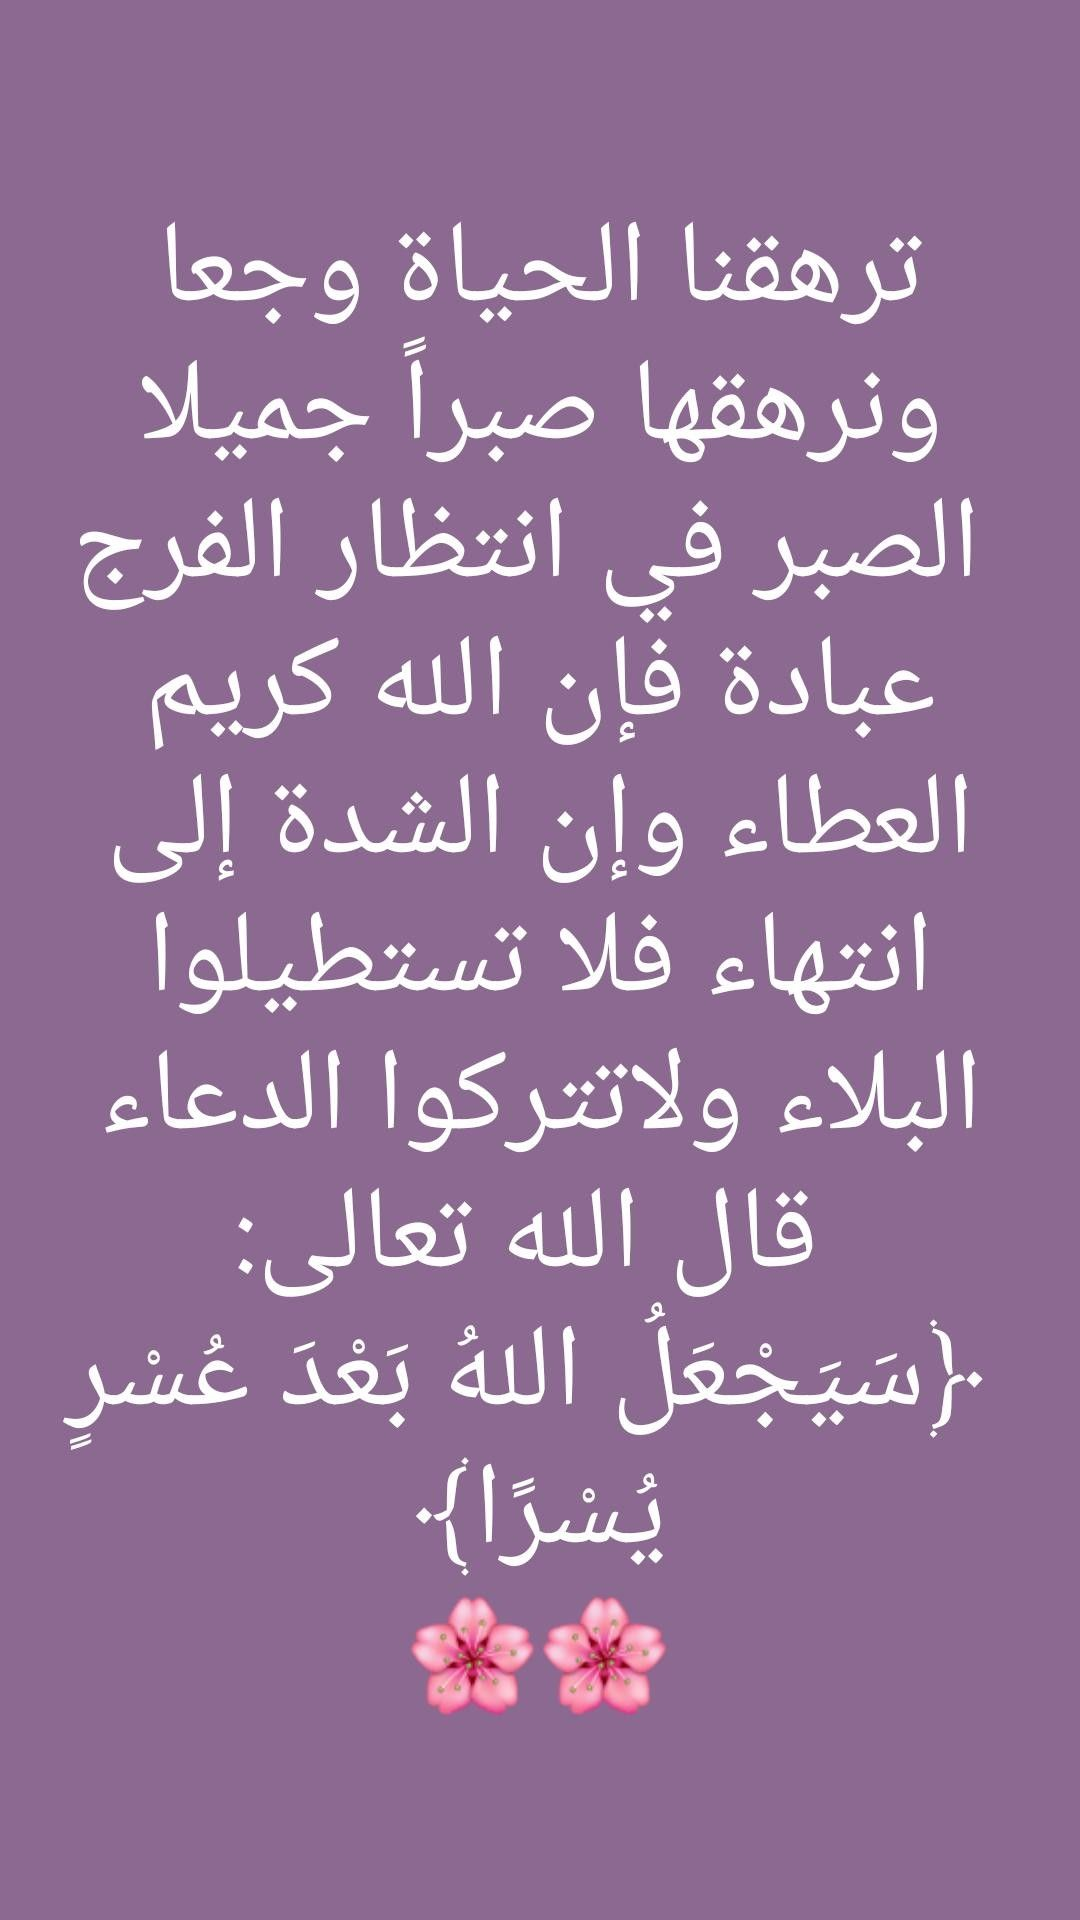 Pin By Lyan Hitham On Islamic Quotes Islamic Quotes Quotes Calligraphy